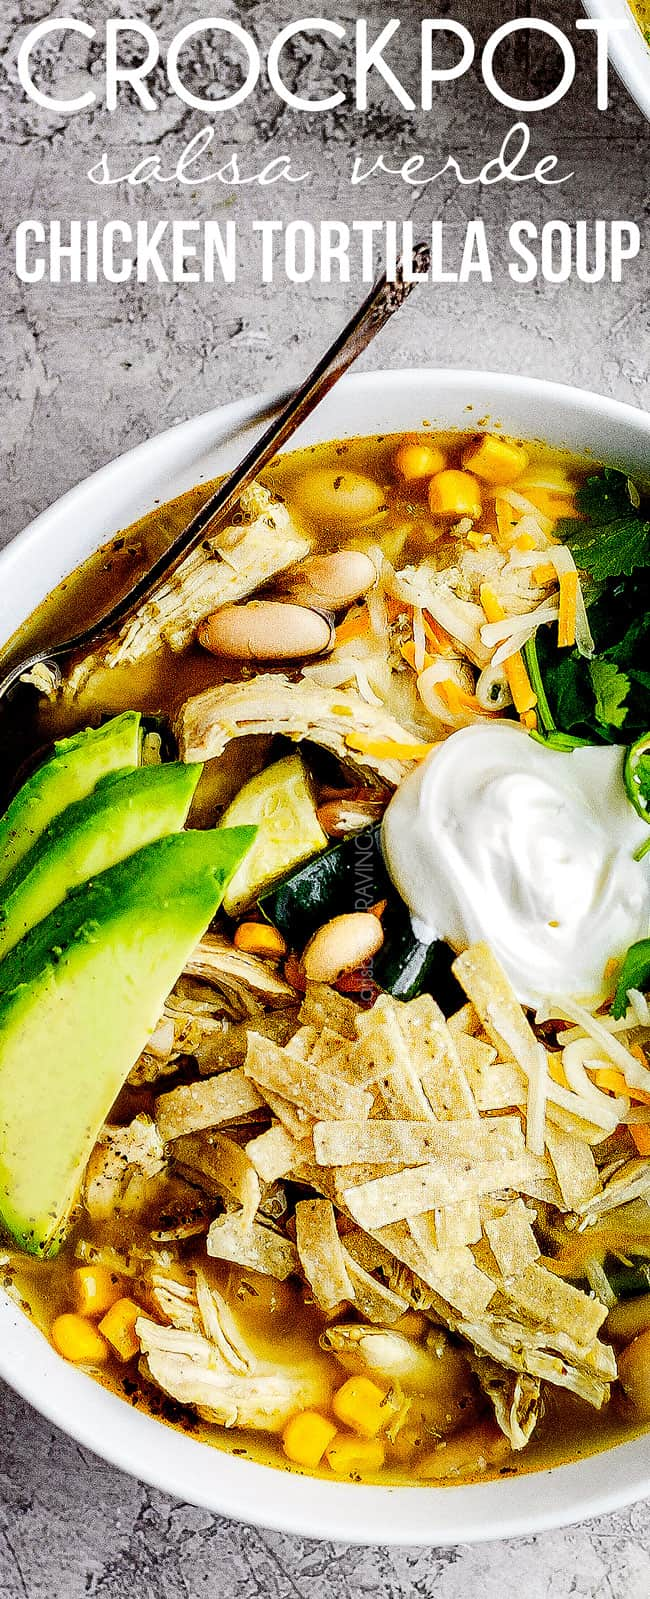 top up close of crockpot chicken torilla soup garnished with sour cream, avocados, cilantro and tortilla strips